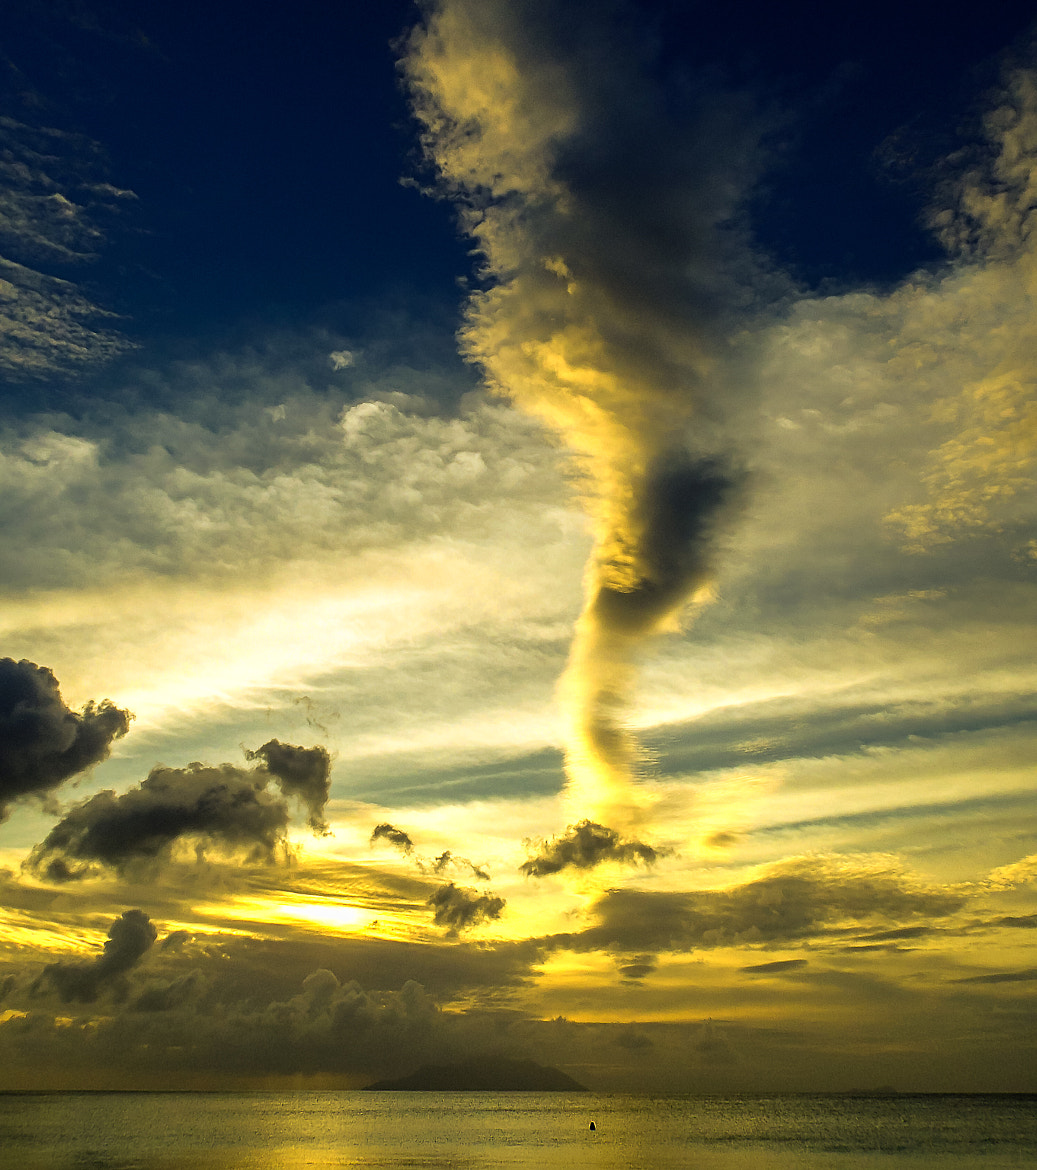 Photograph Clouds by Visarion Nicolof on 500px